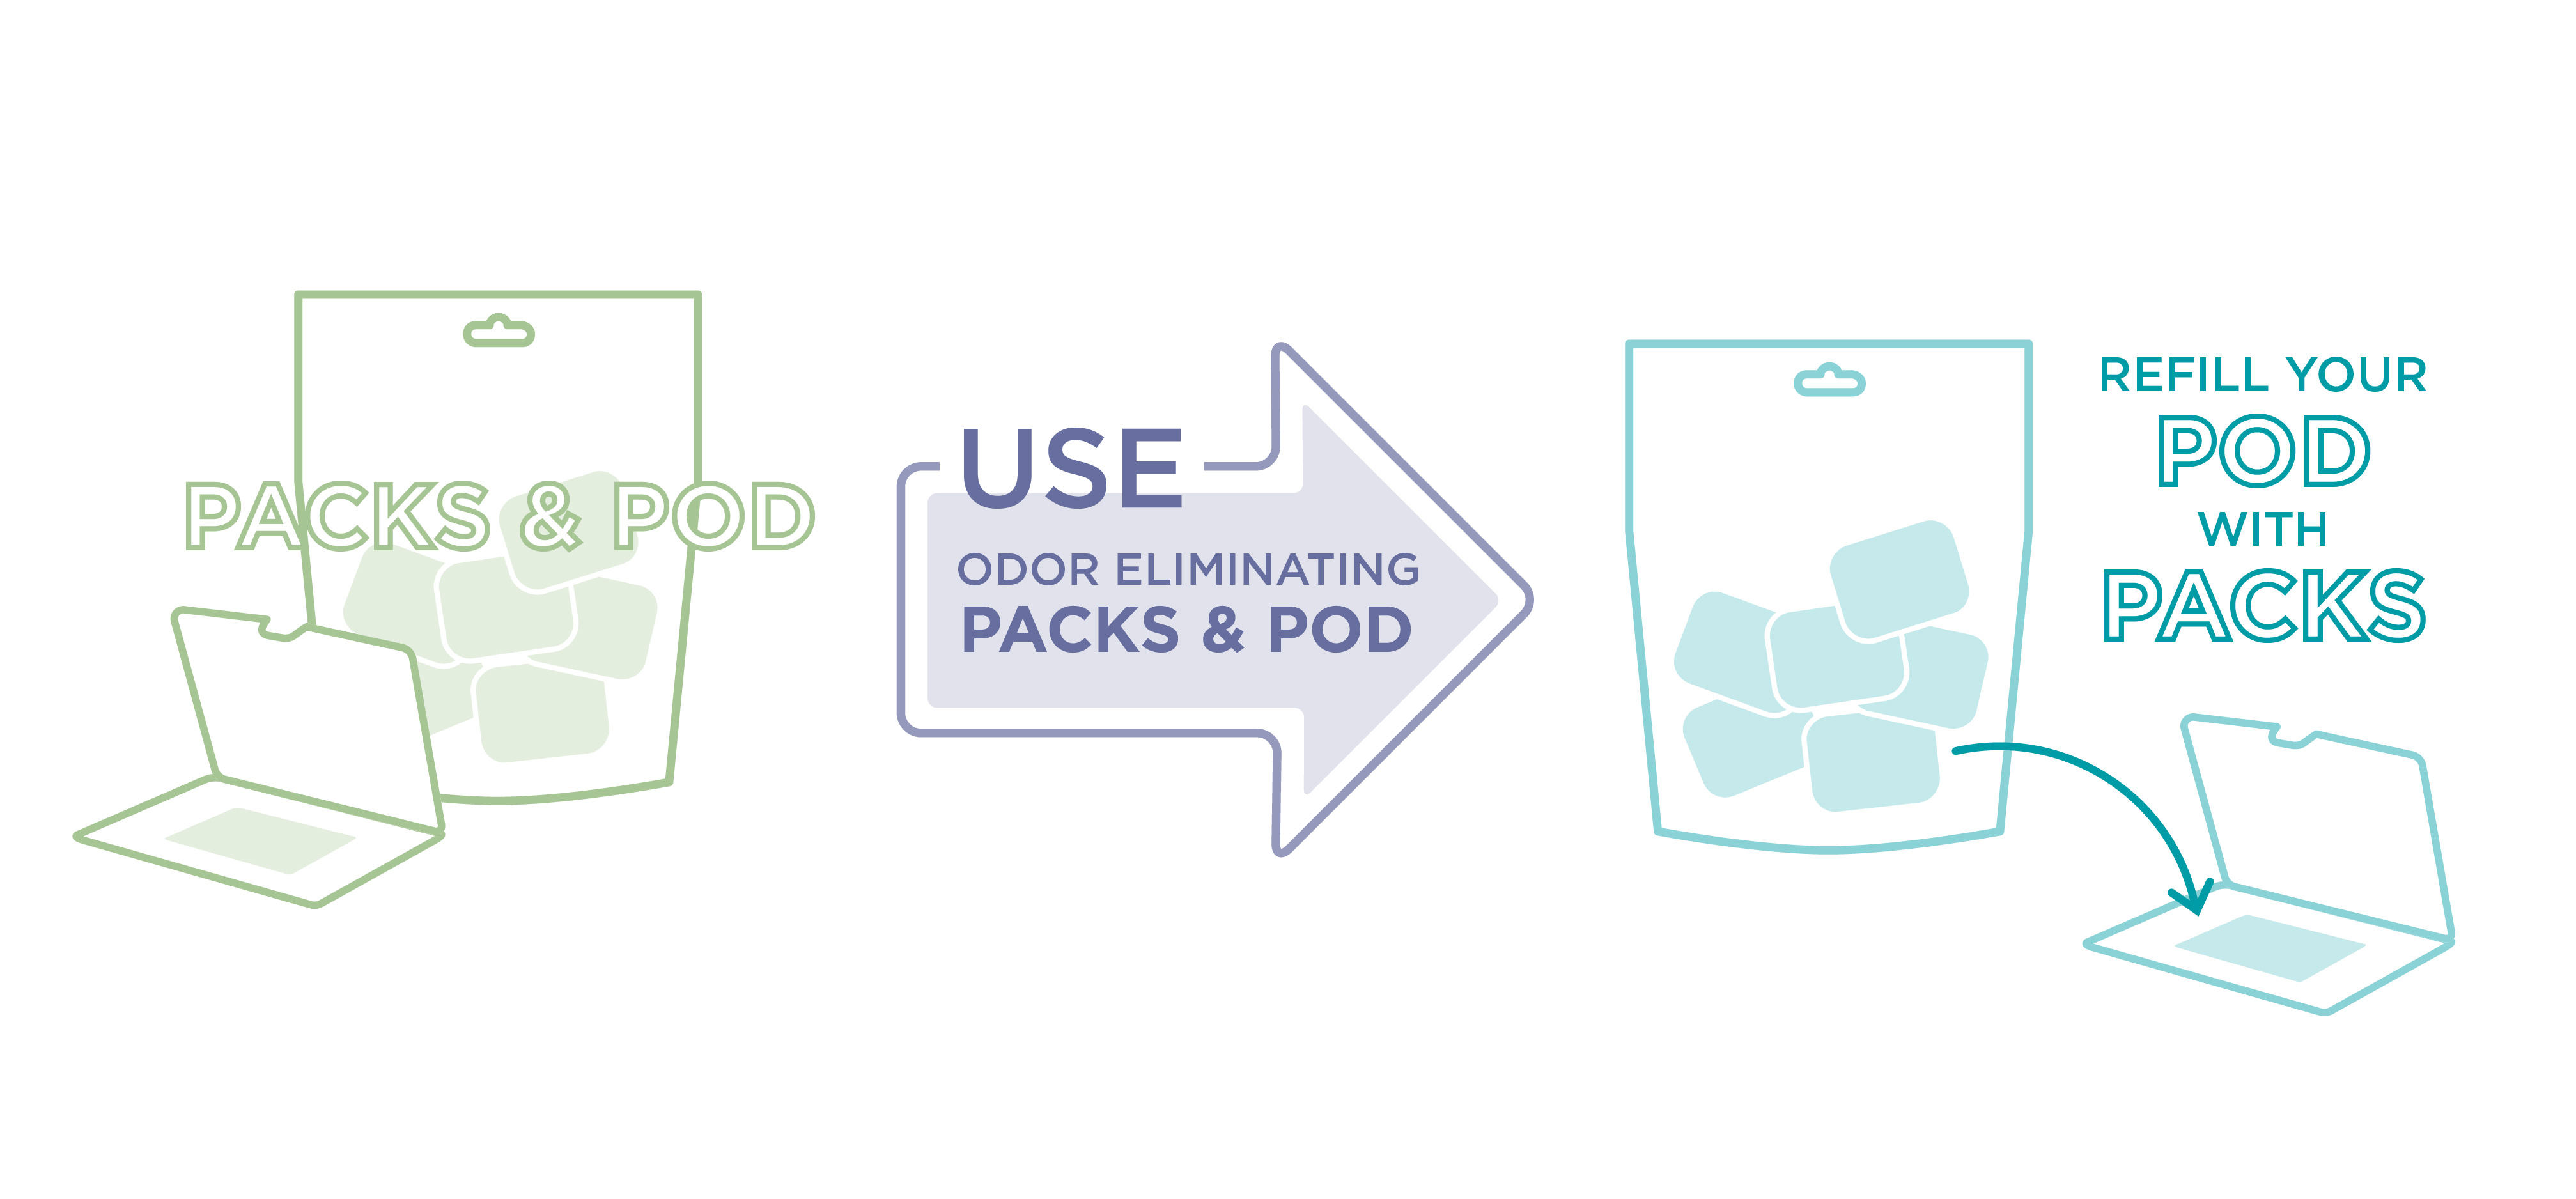 how to use packs and pod infographic